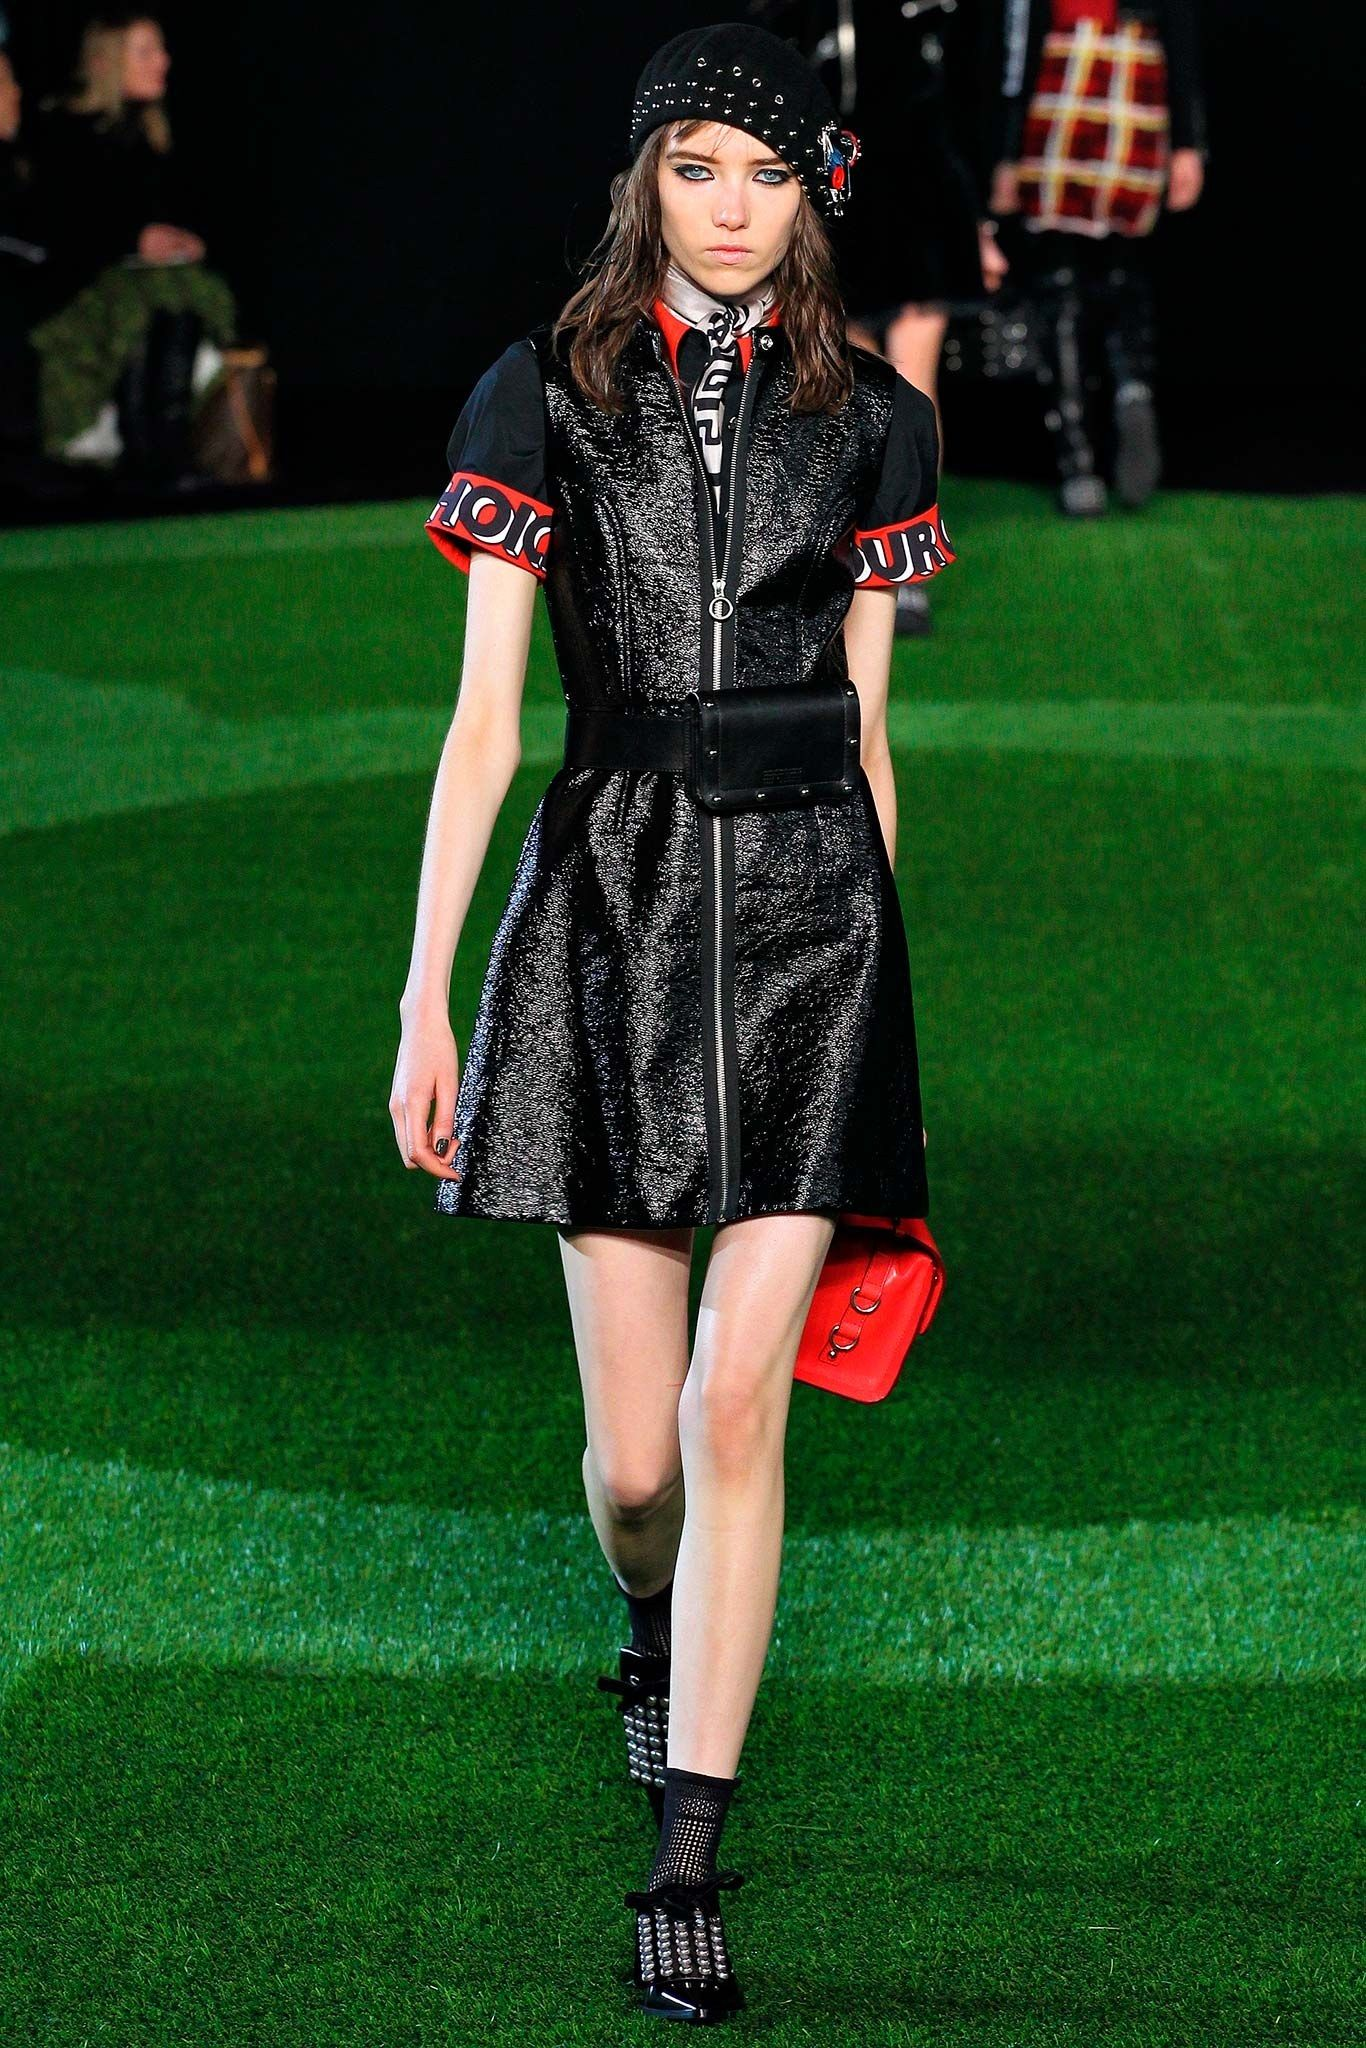 Marc by Marc Jacobs Fall 2015 Ready-to-Wear Fashion Show -Look 22, Grace Hartzel